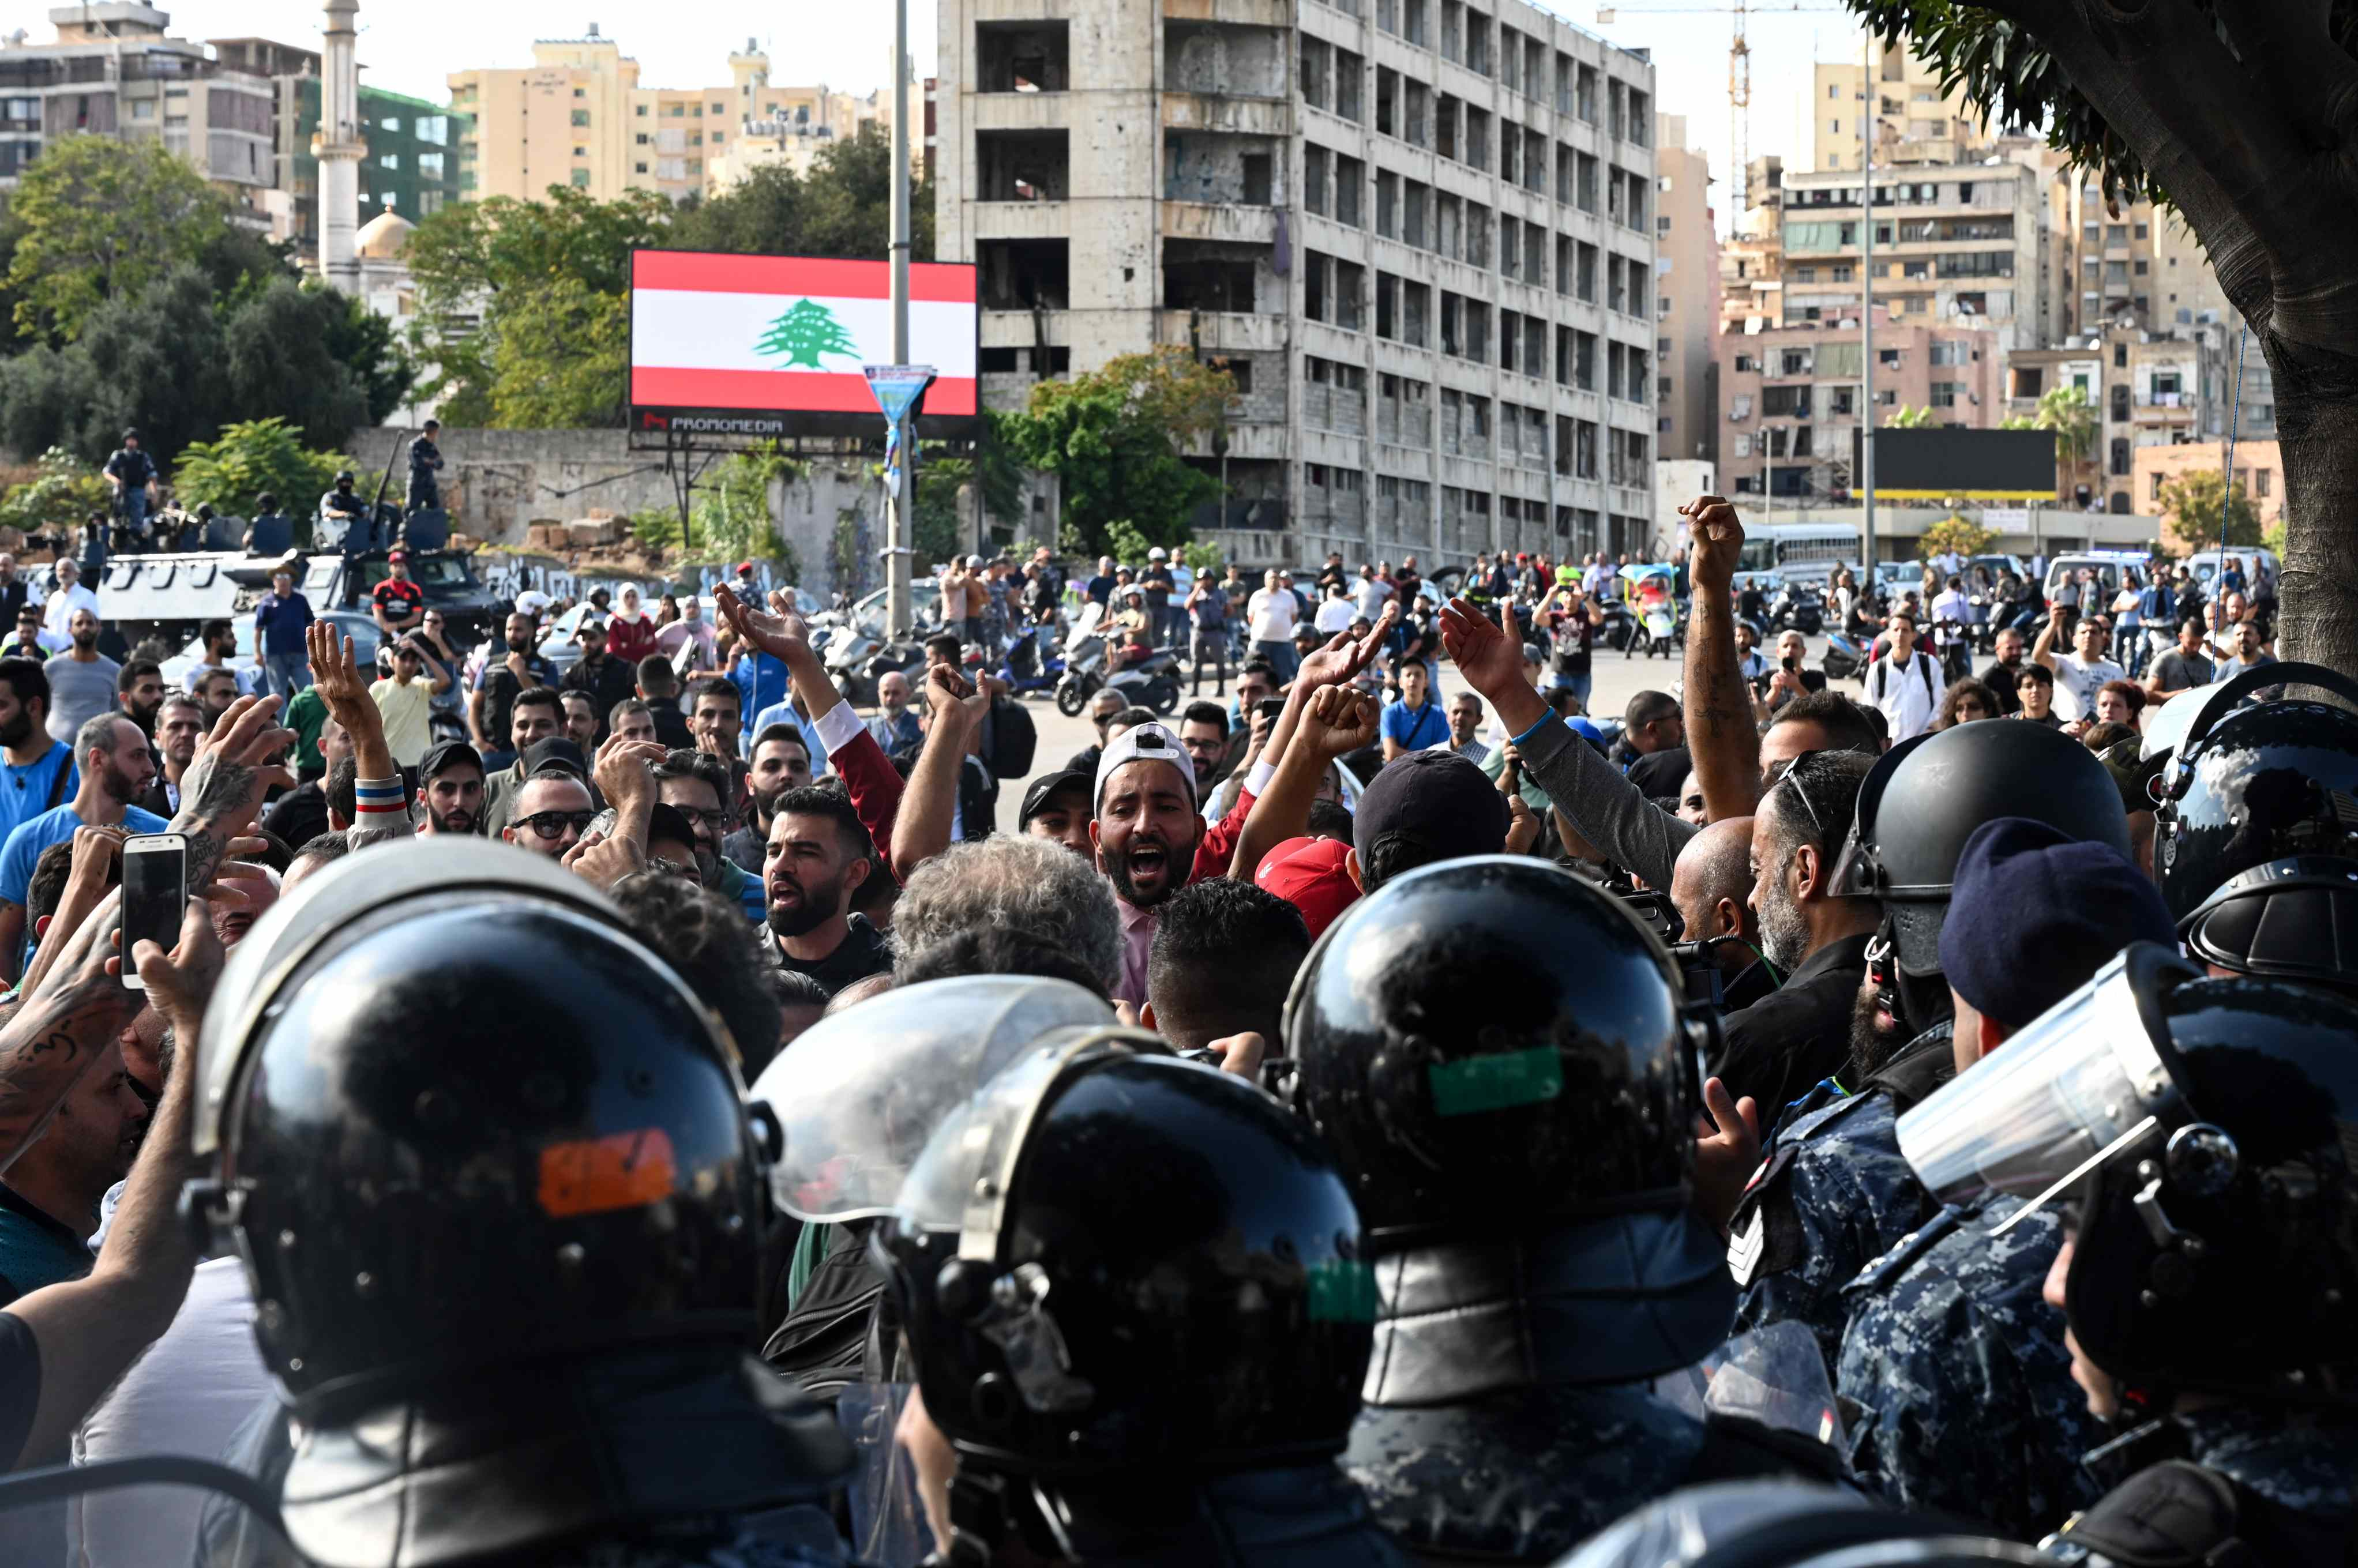 A group of young men, flanked by riot police, chants in support of Speaker of Parliament Nabih Berri (MEE/Finbar Anderson)